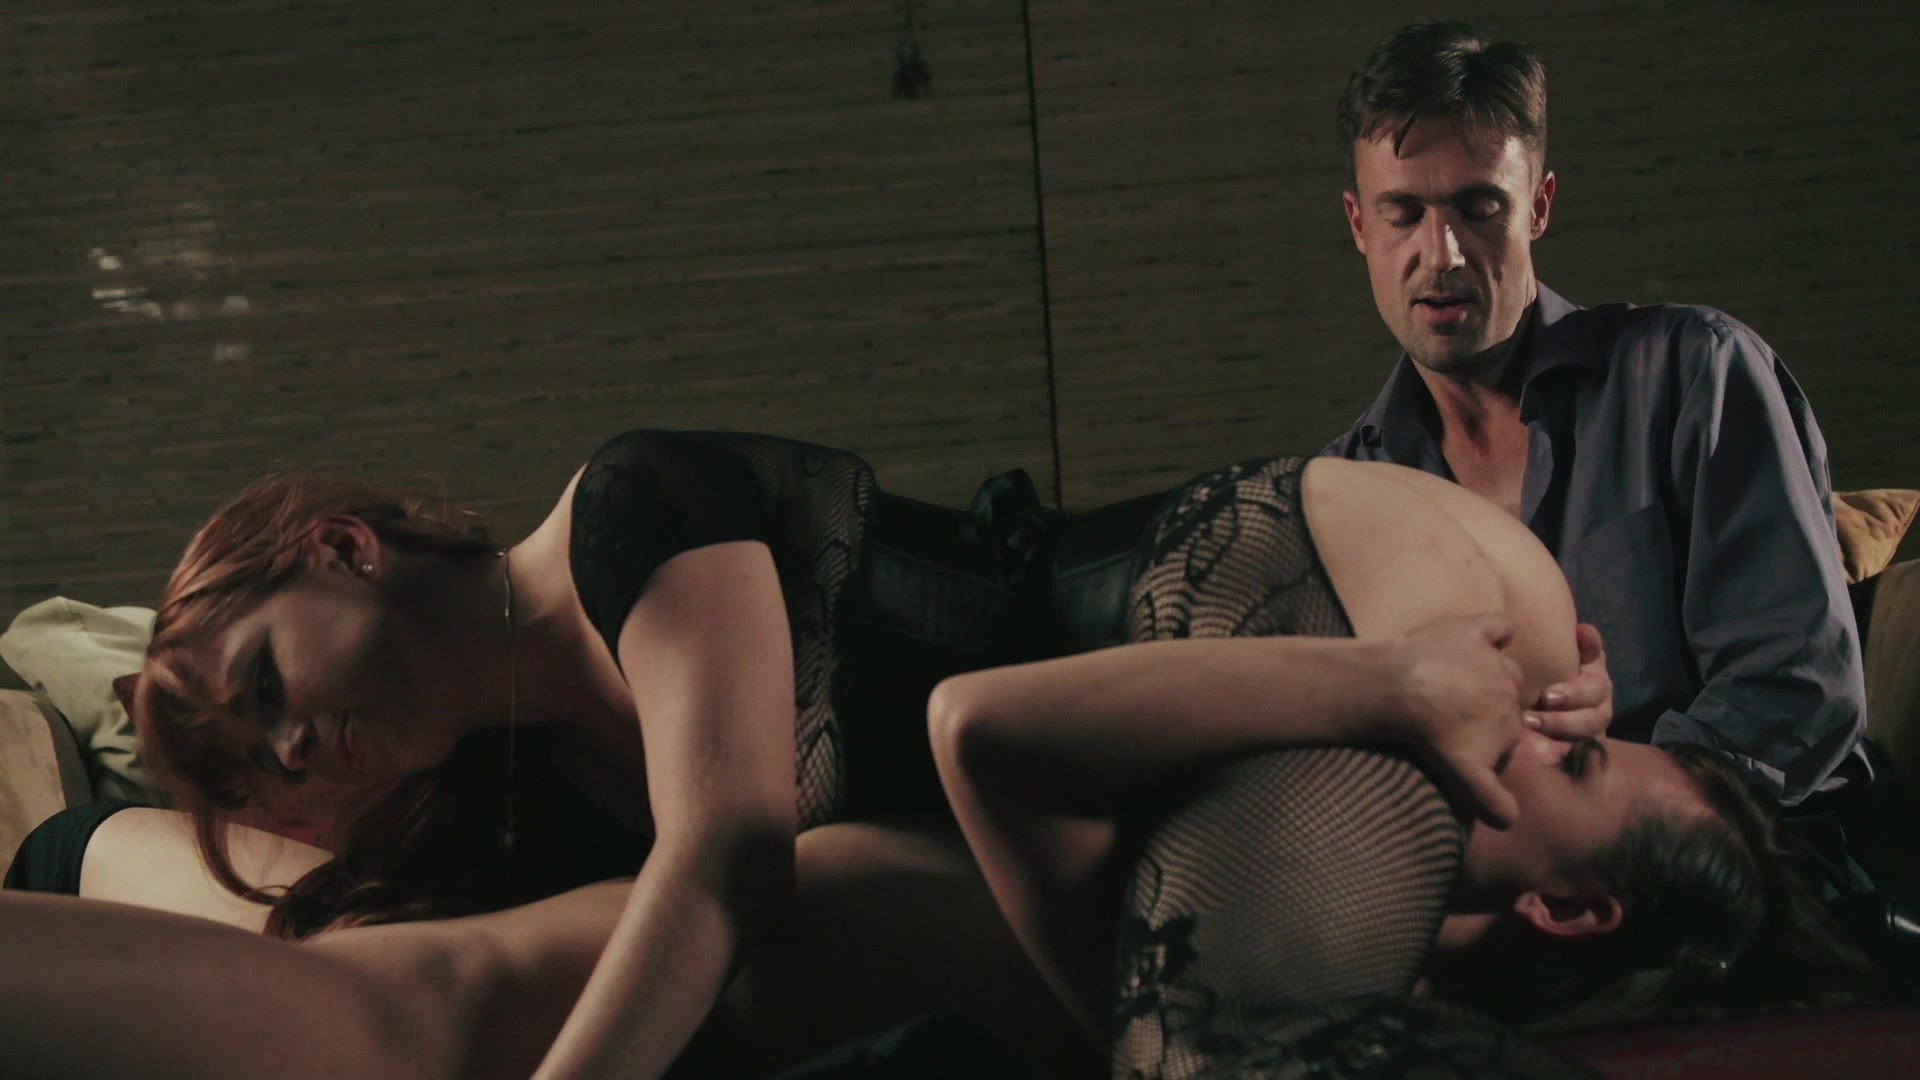 Scene with Richie Calhoun, Penny Pax and Aidra Fox - image 7 out of 20